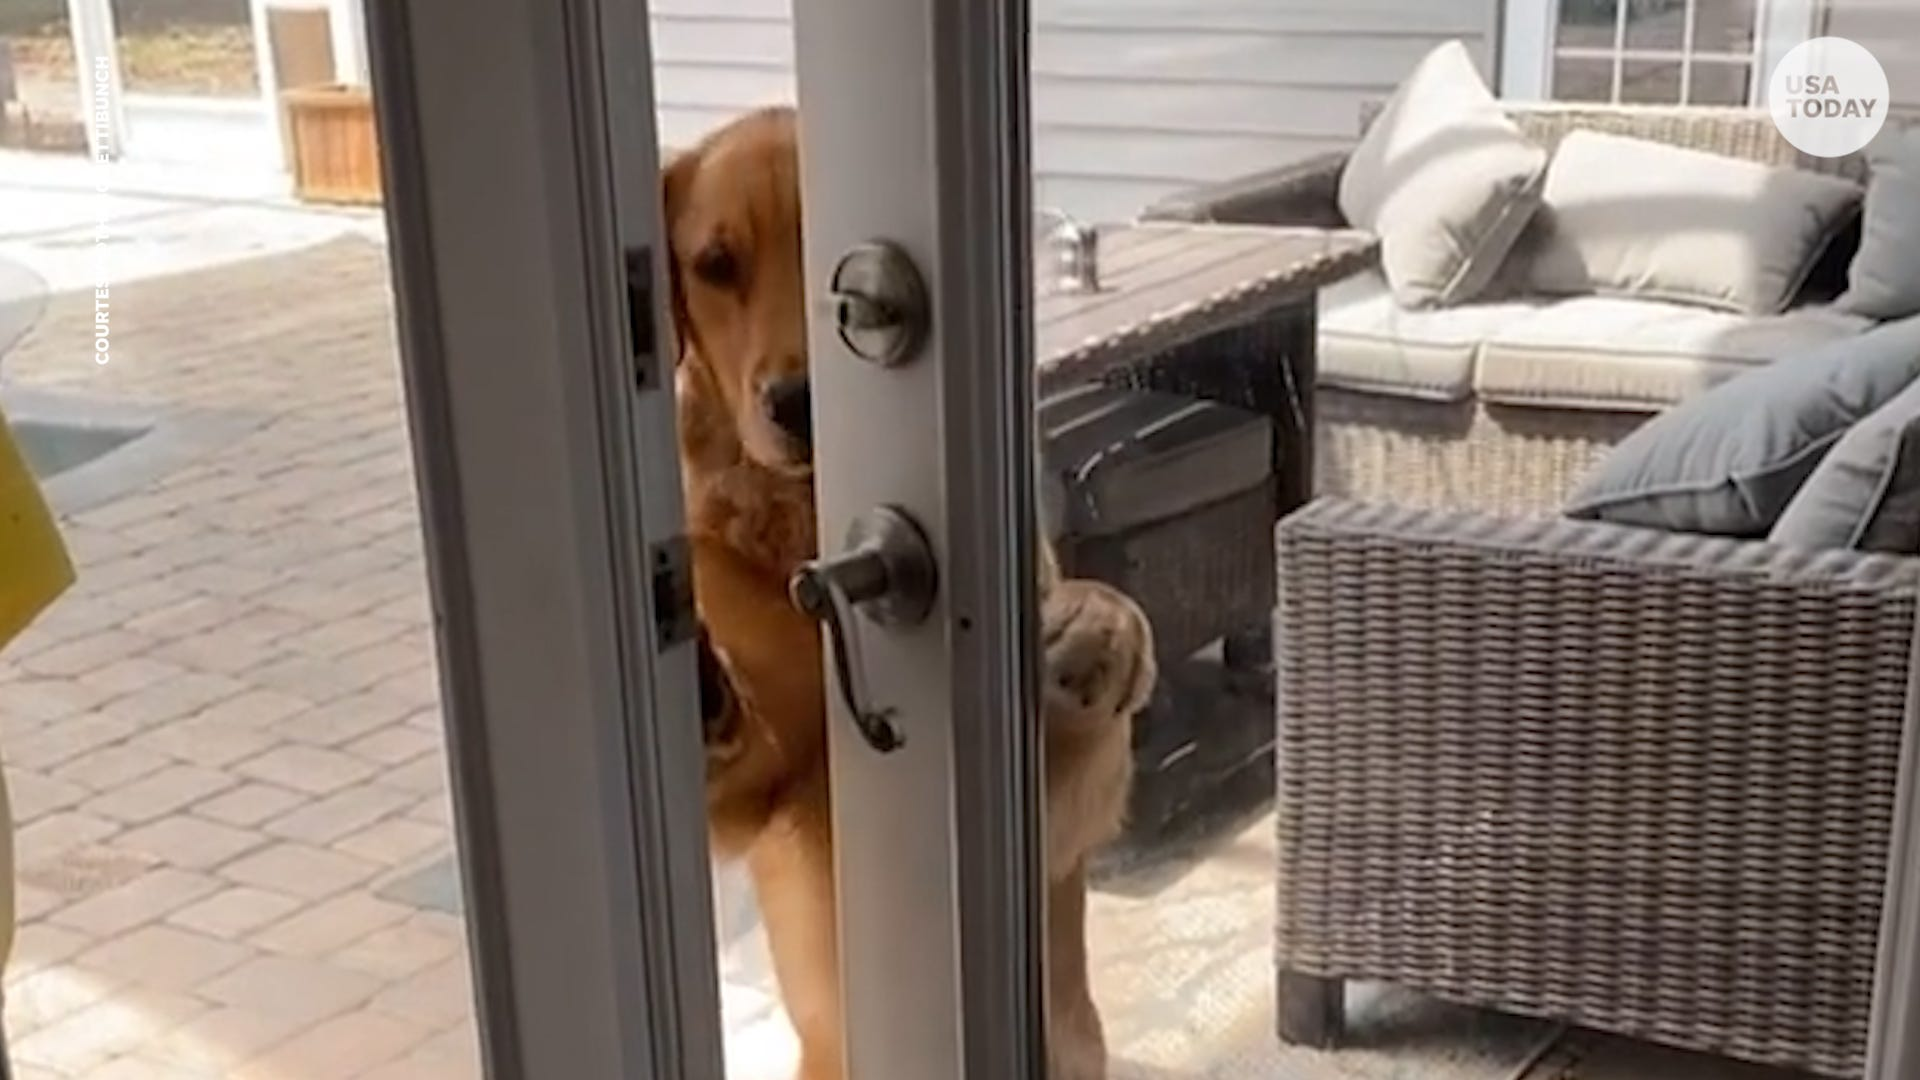 Golden retriever surprises owner by opening the door and going inside